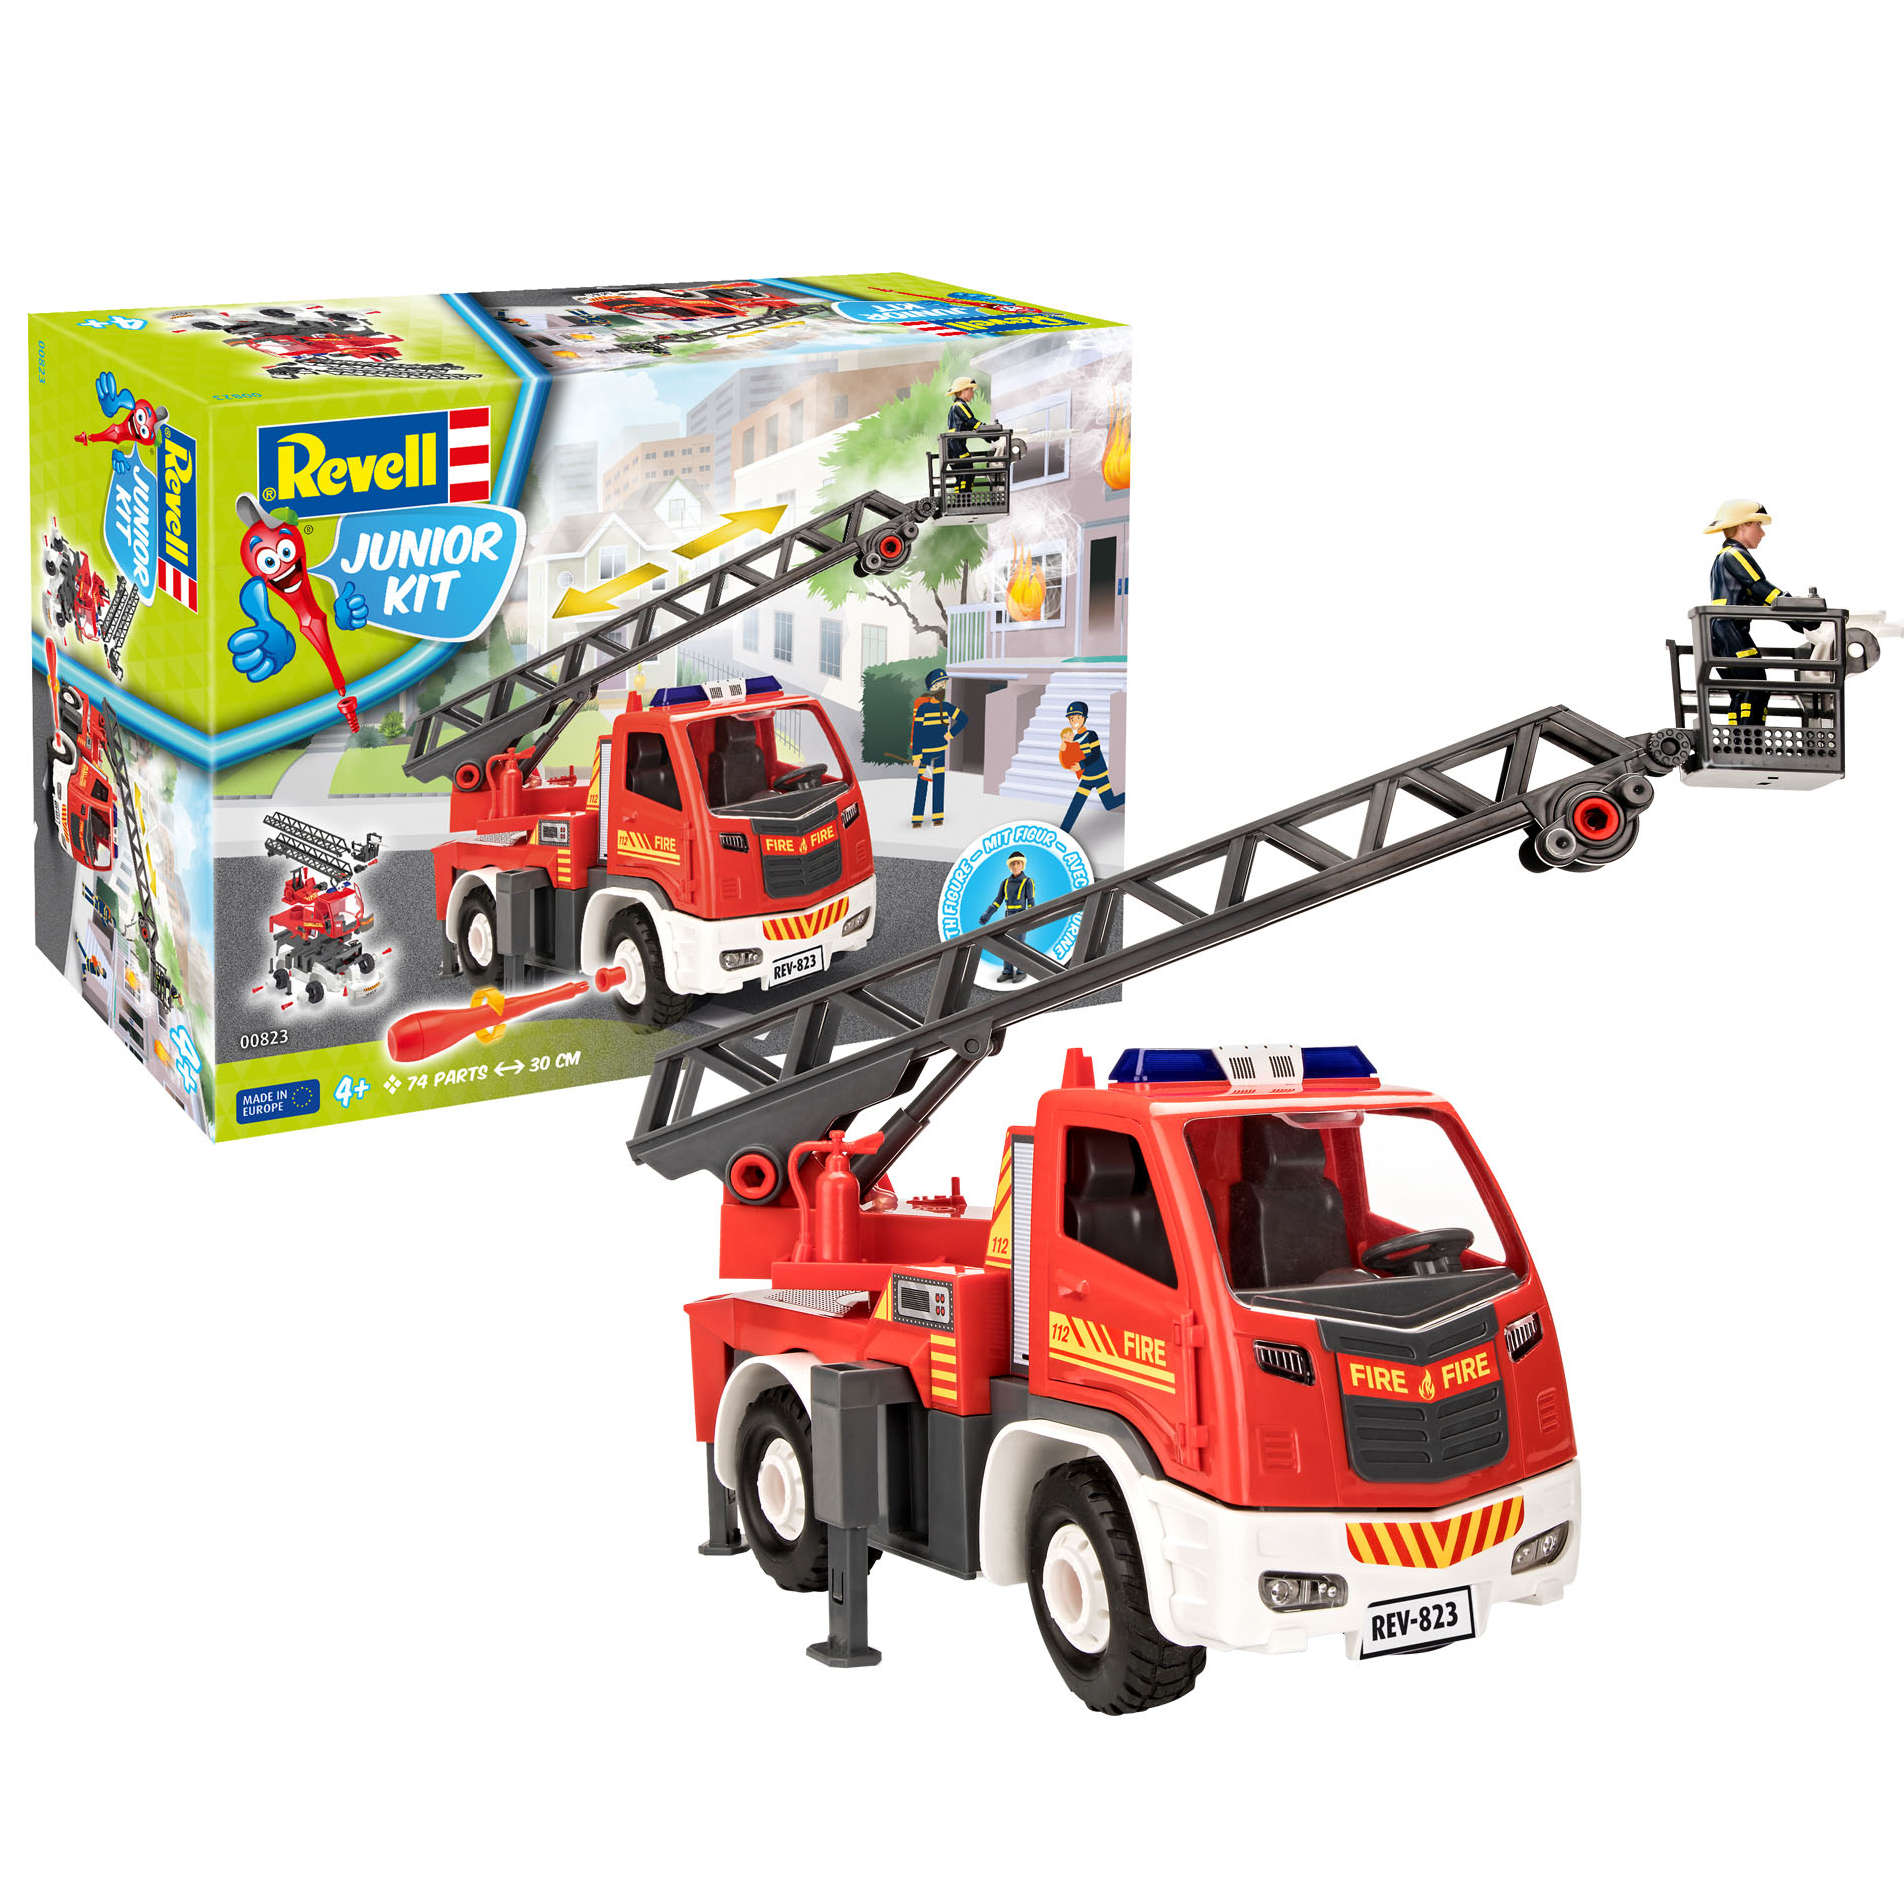 Fire brigade ladder wagon with figure